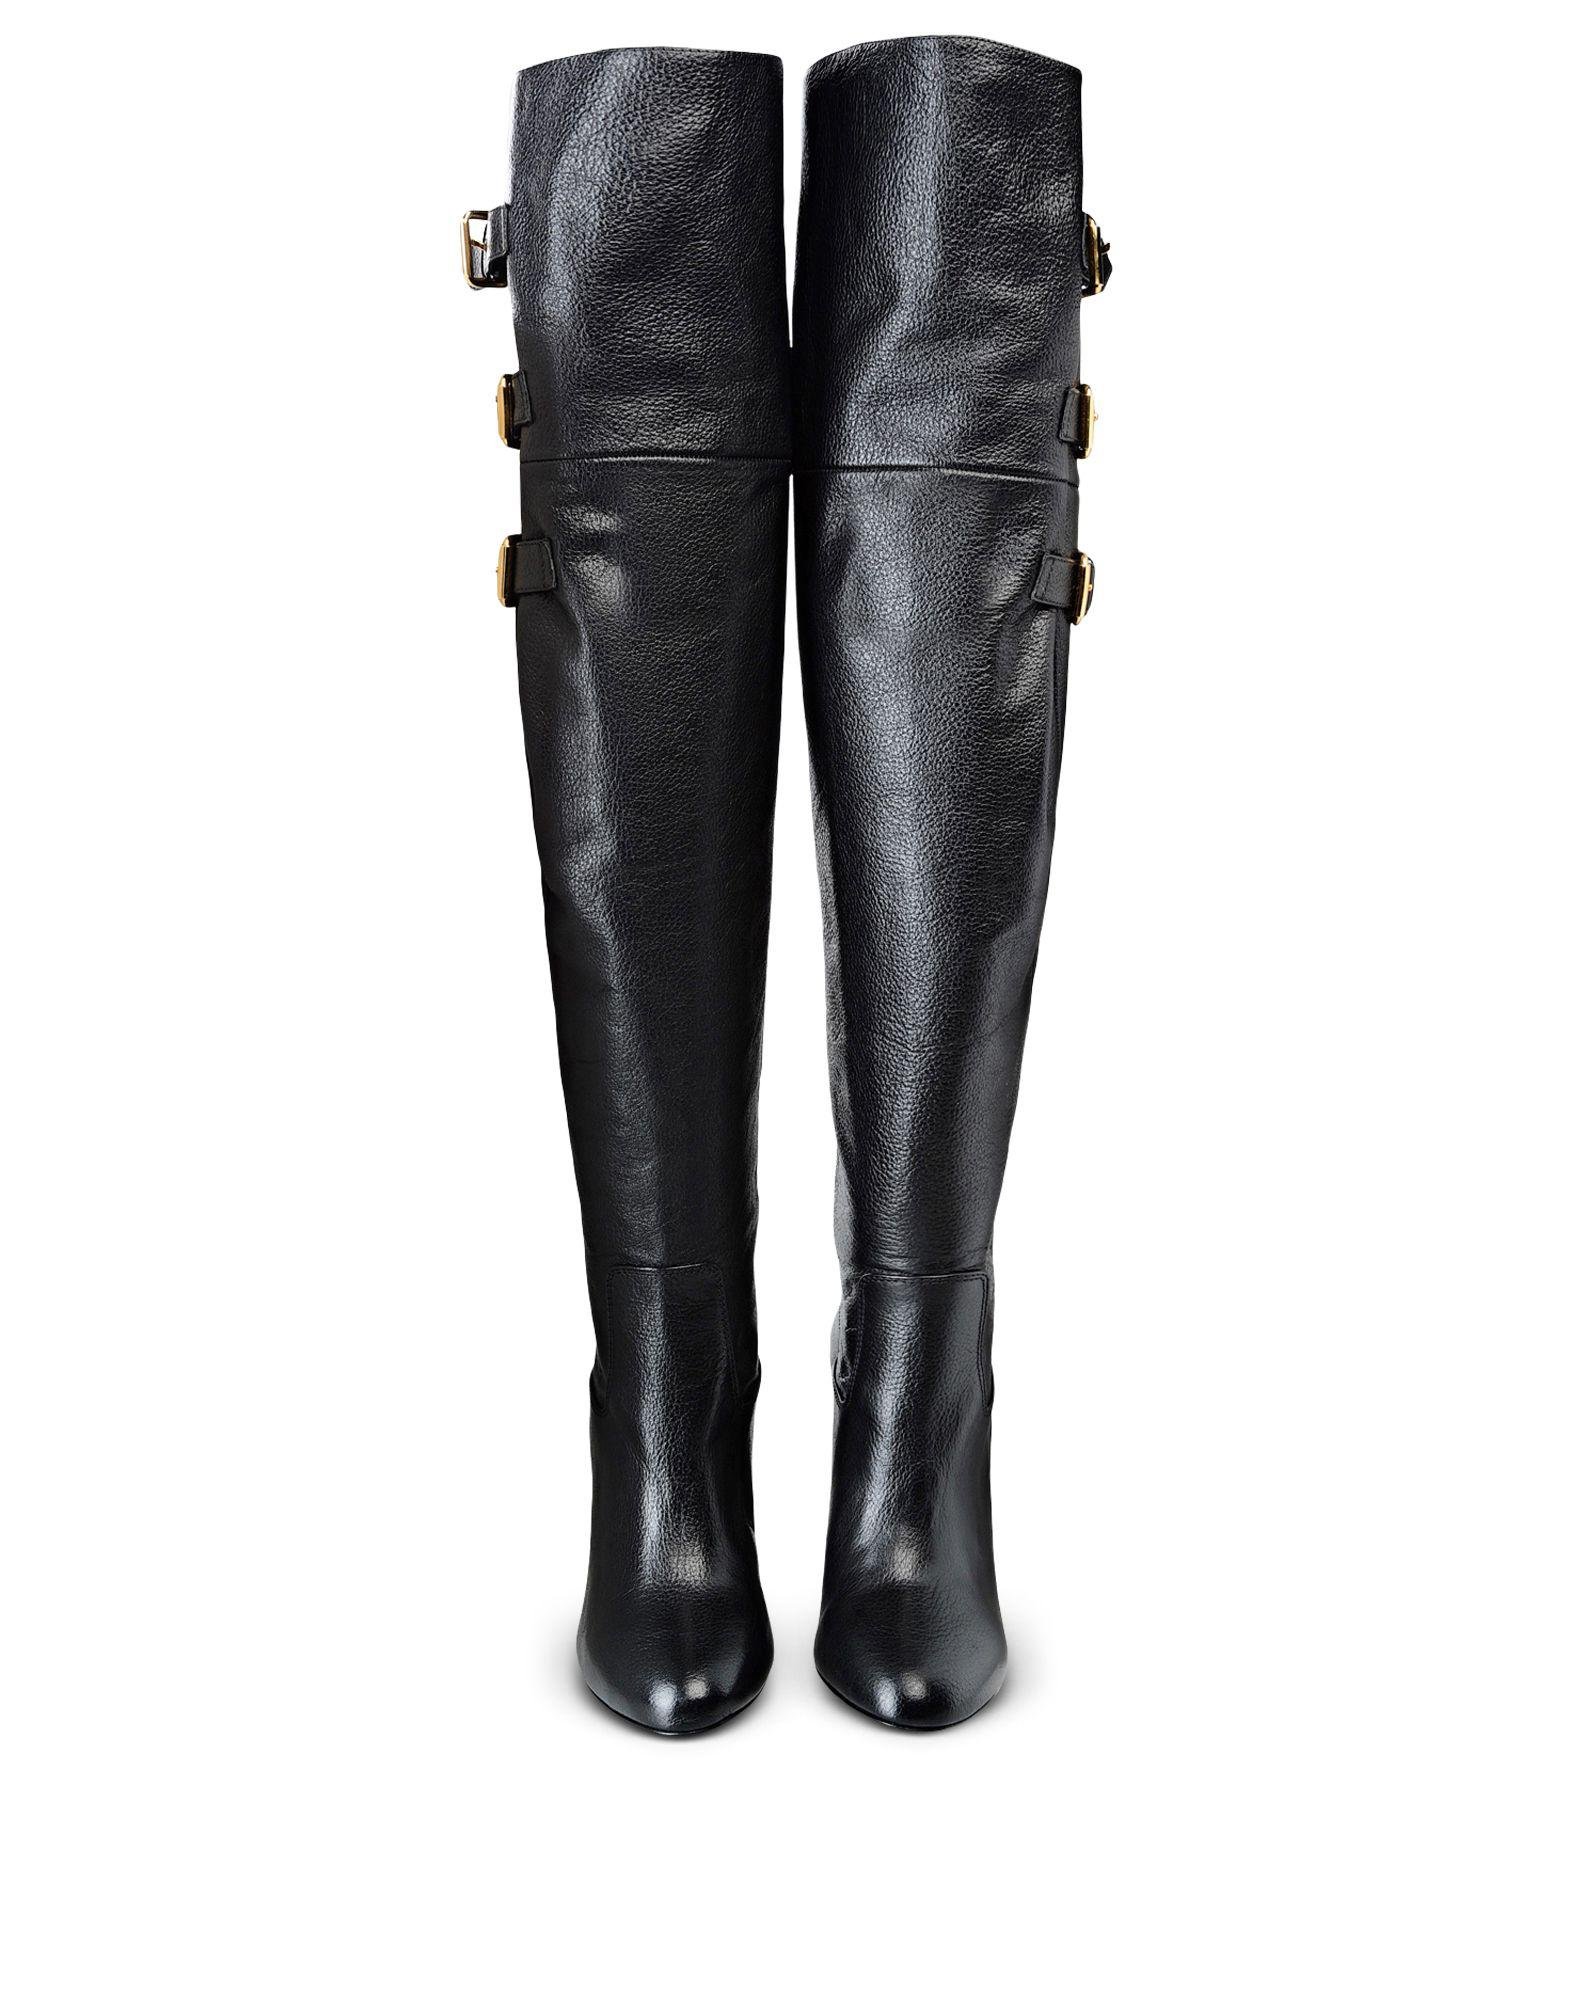 fe9d0dd8555 Boutique Moschino Buckled Goatskin Knee-High Boots in Black - Lyst